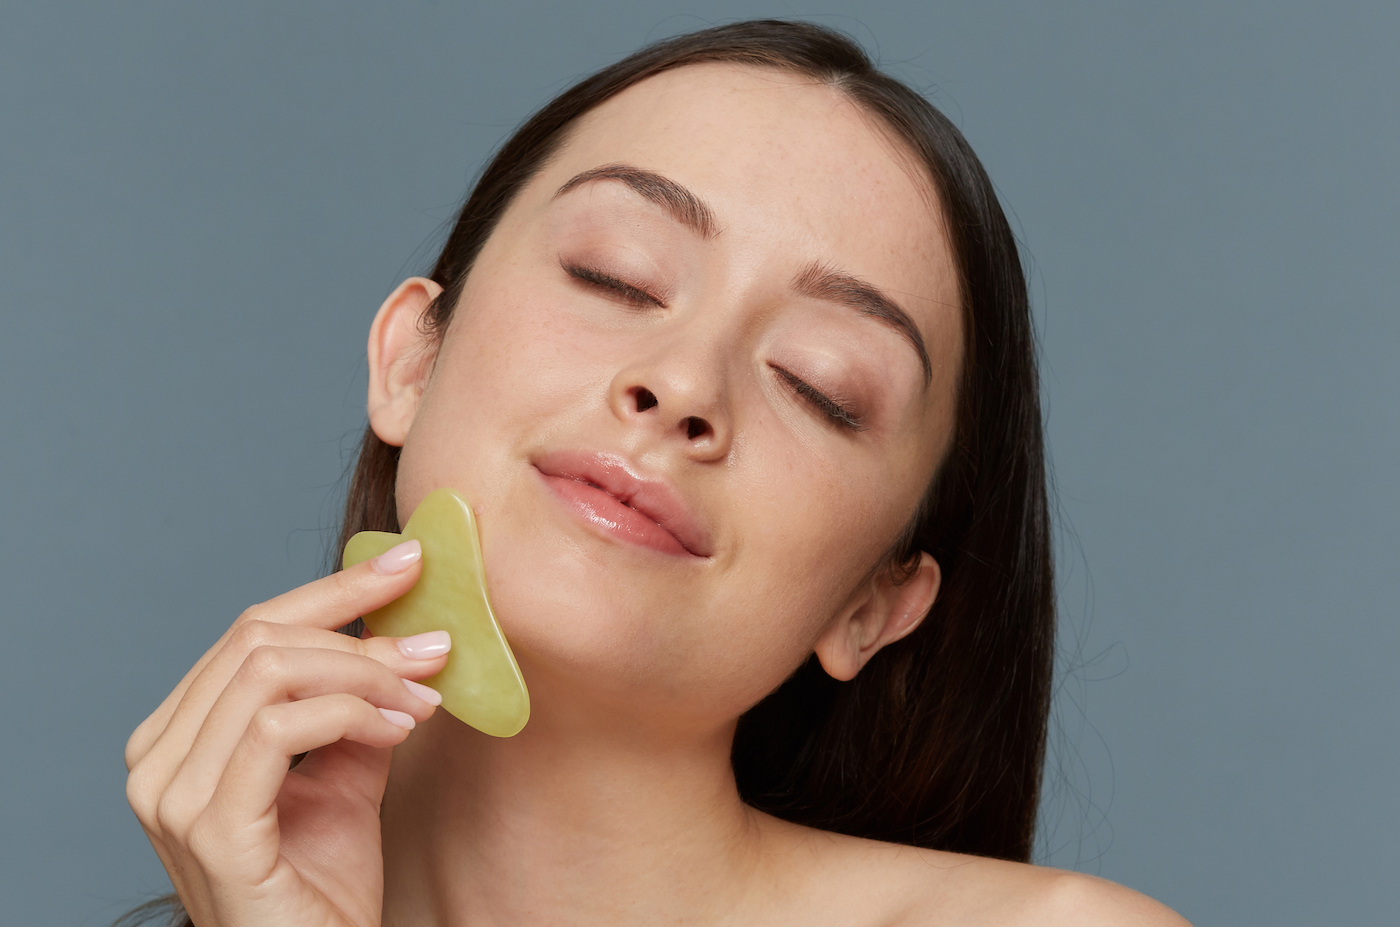 Thumbnail for An esthetician shares the basics on how to gua sha like a pro